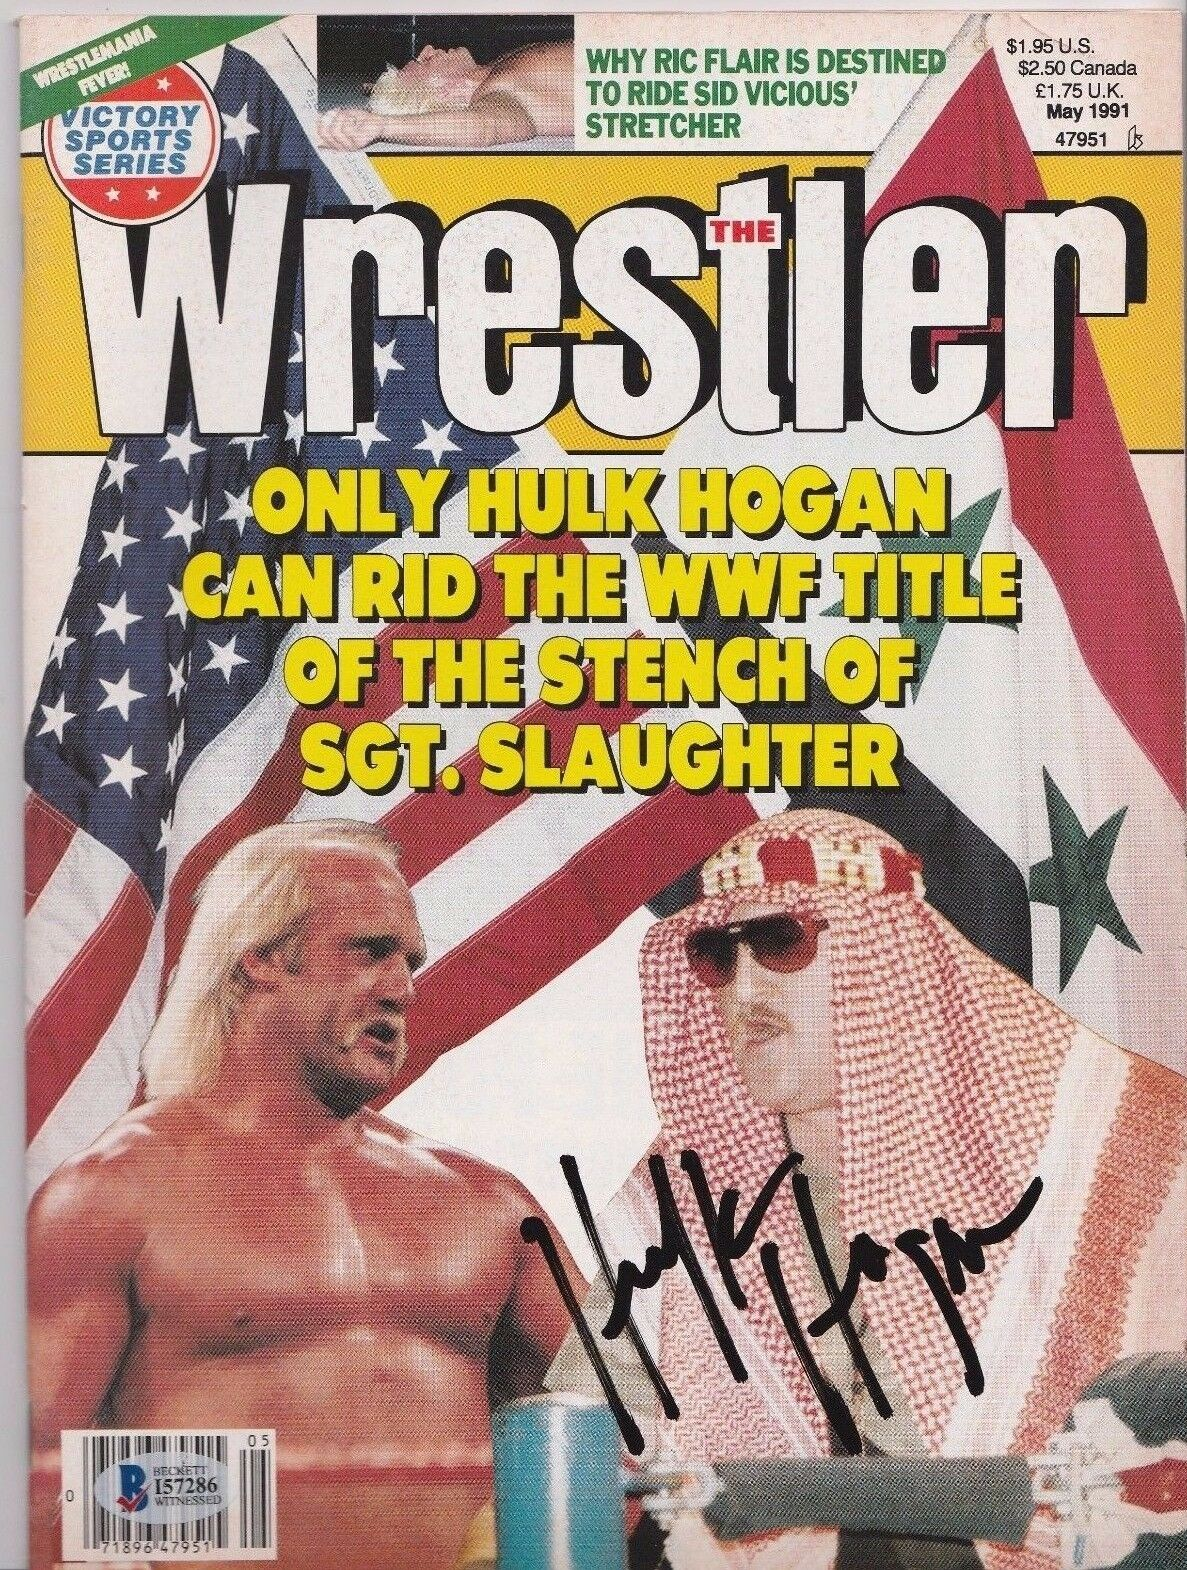 Hulk Hogan Signed May 1991 The Wrestler Magazine Beckett BAS